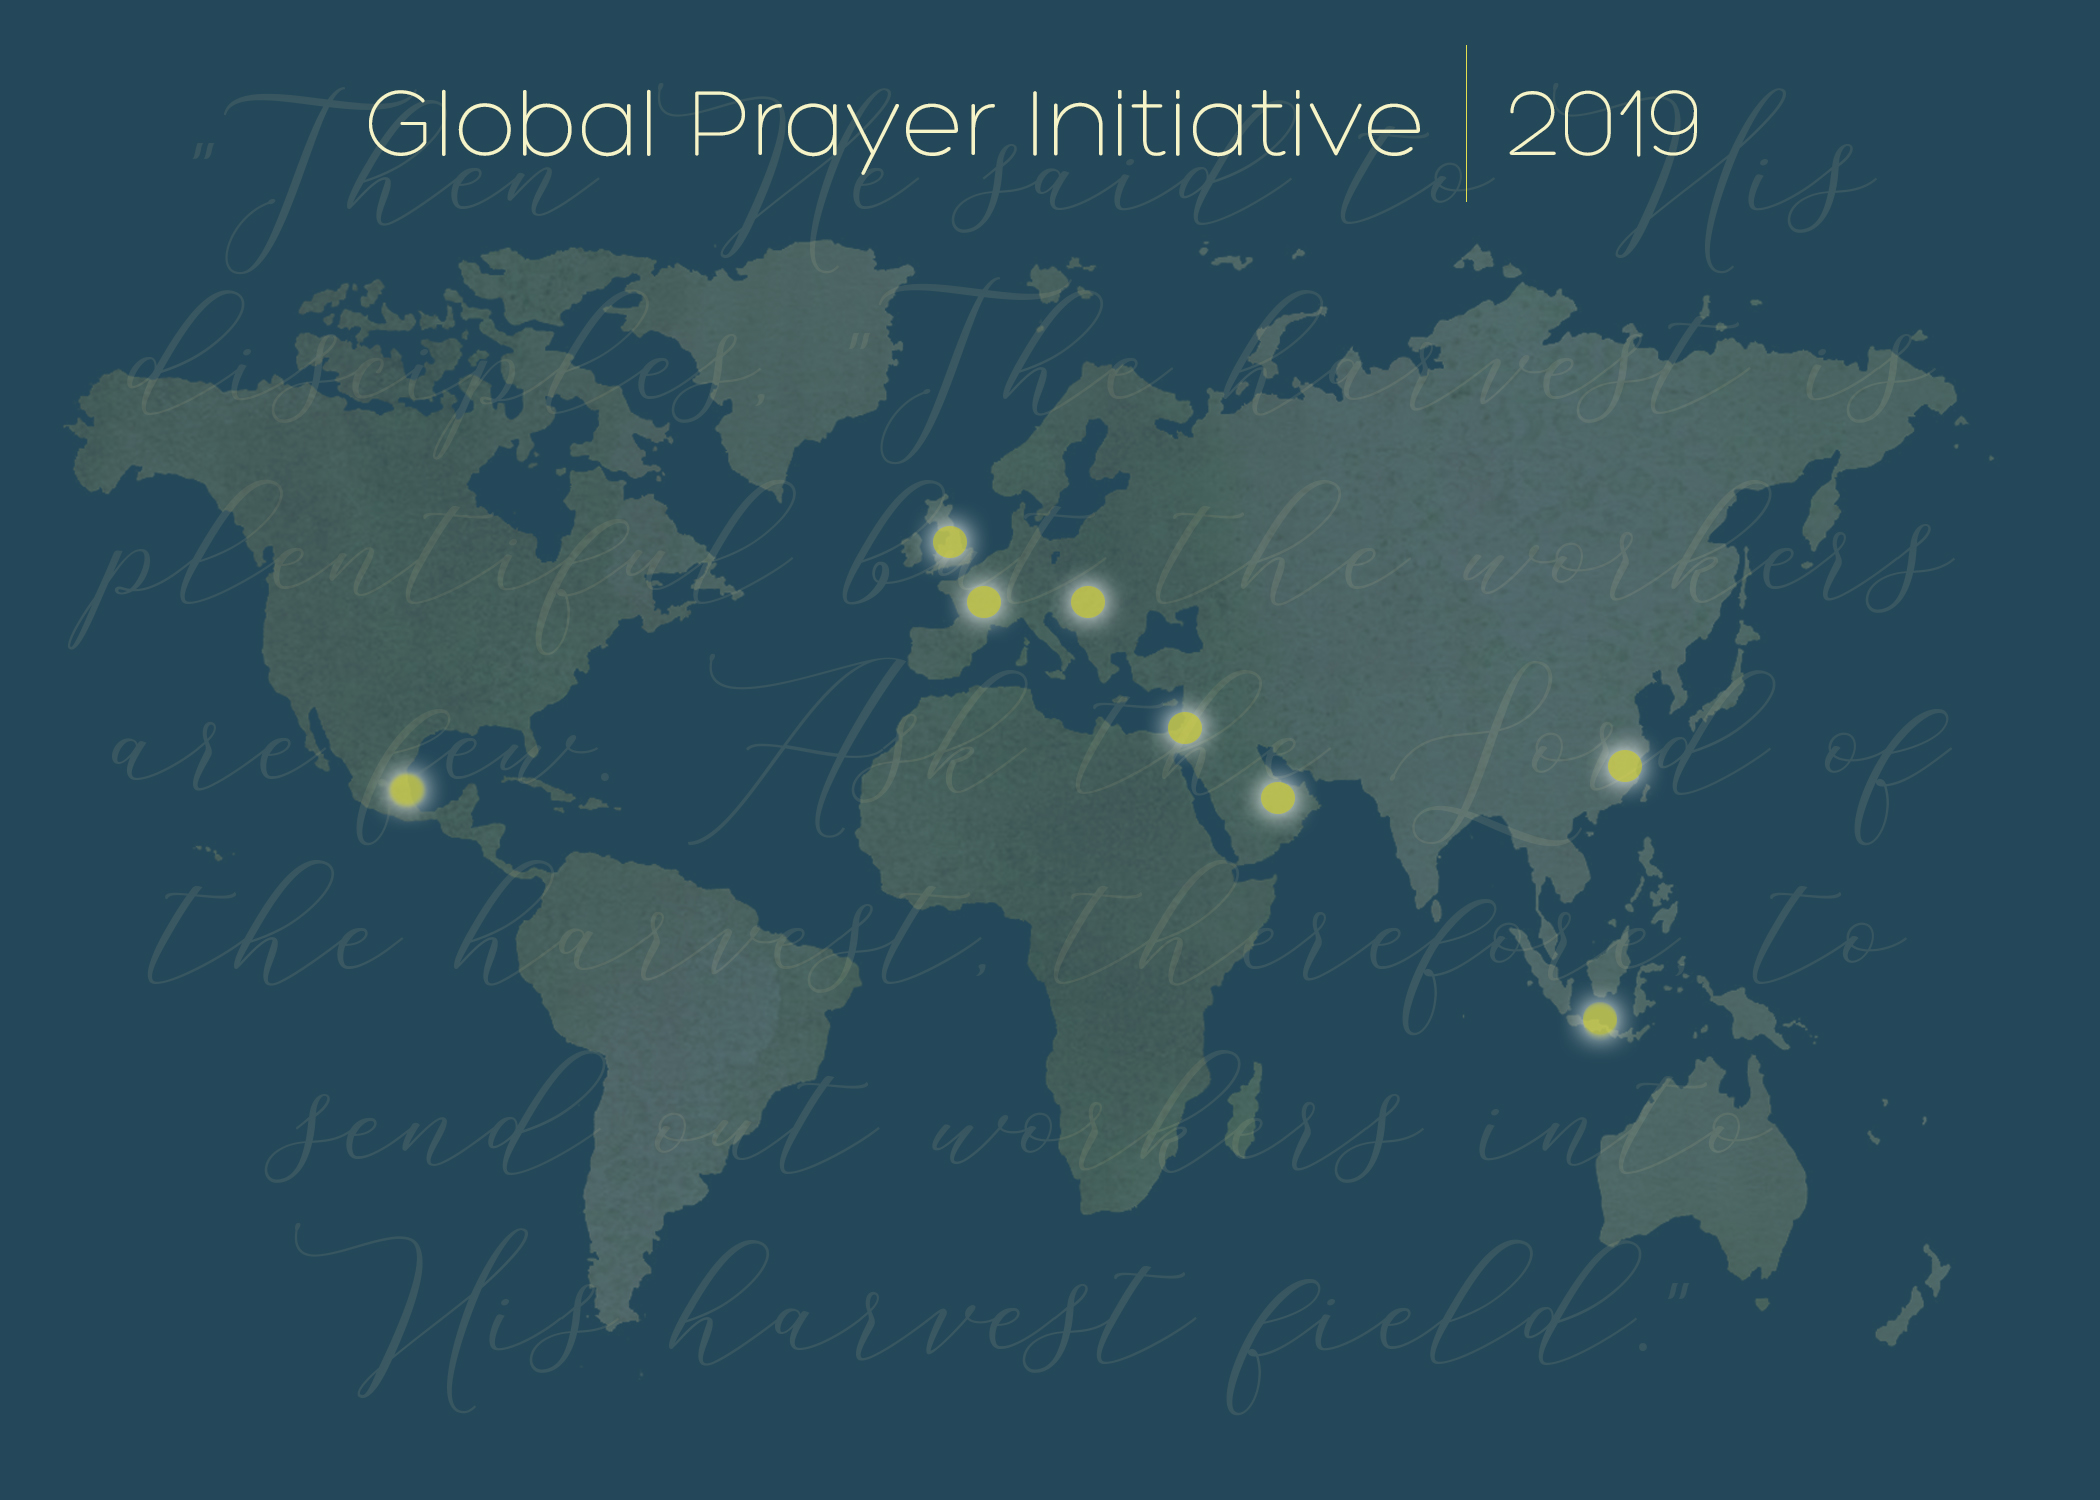 Global Prayer Initiative